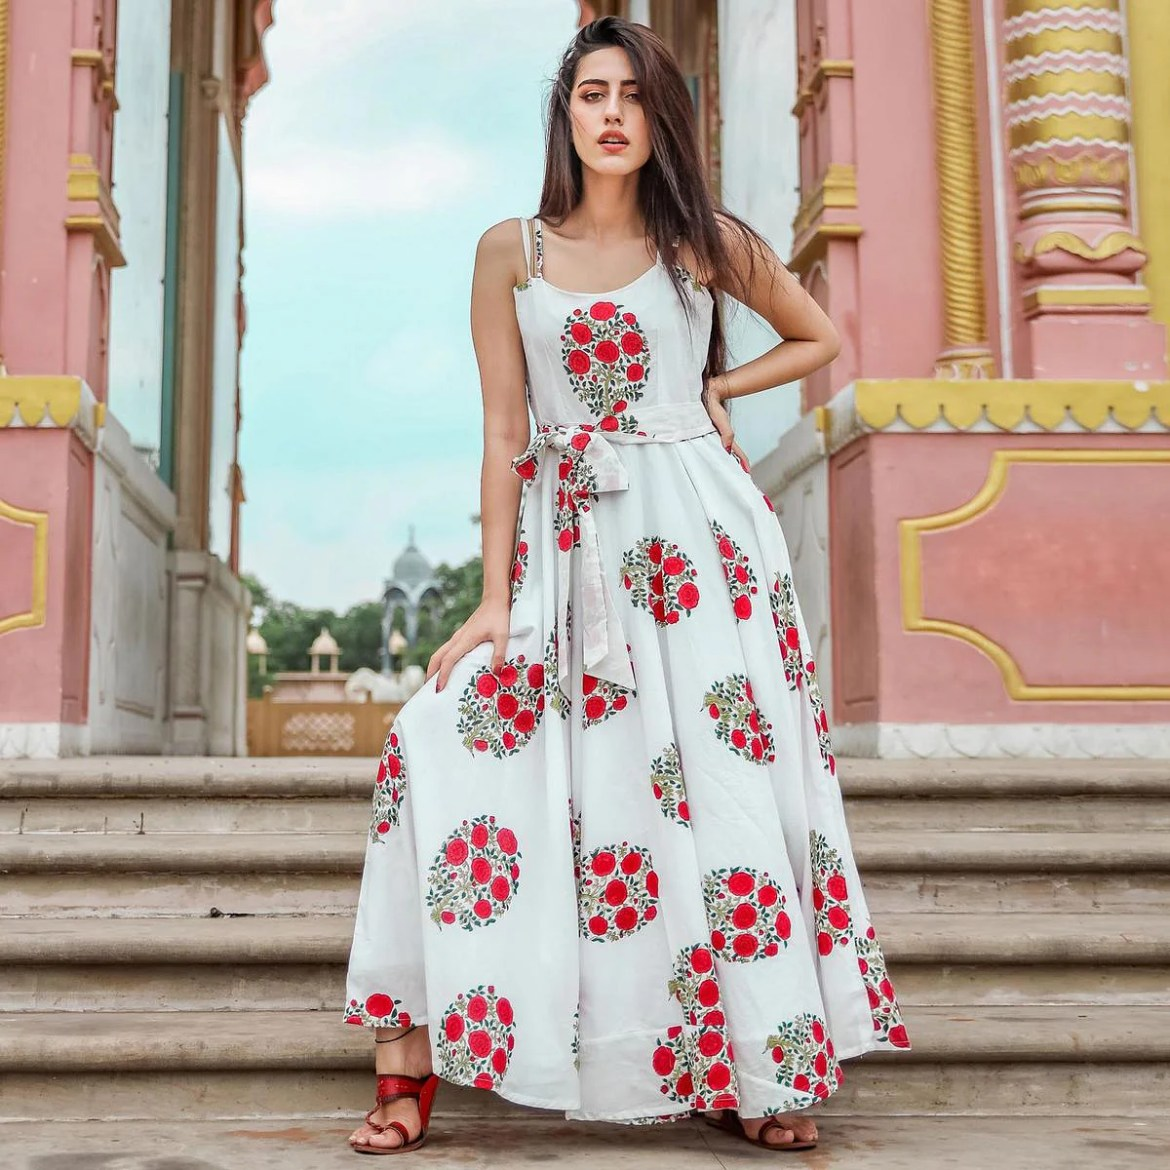 Innovative White Colored Party Wear Digital Floral Printed Cotton Gown With Matching Mask